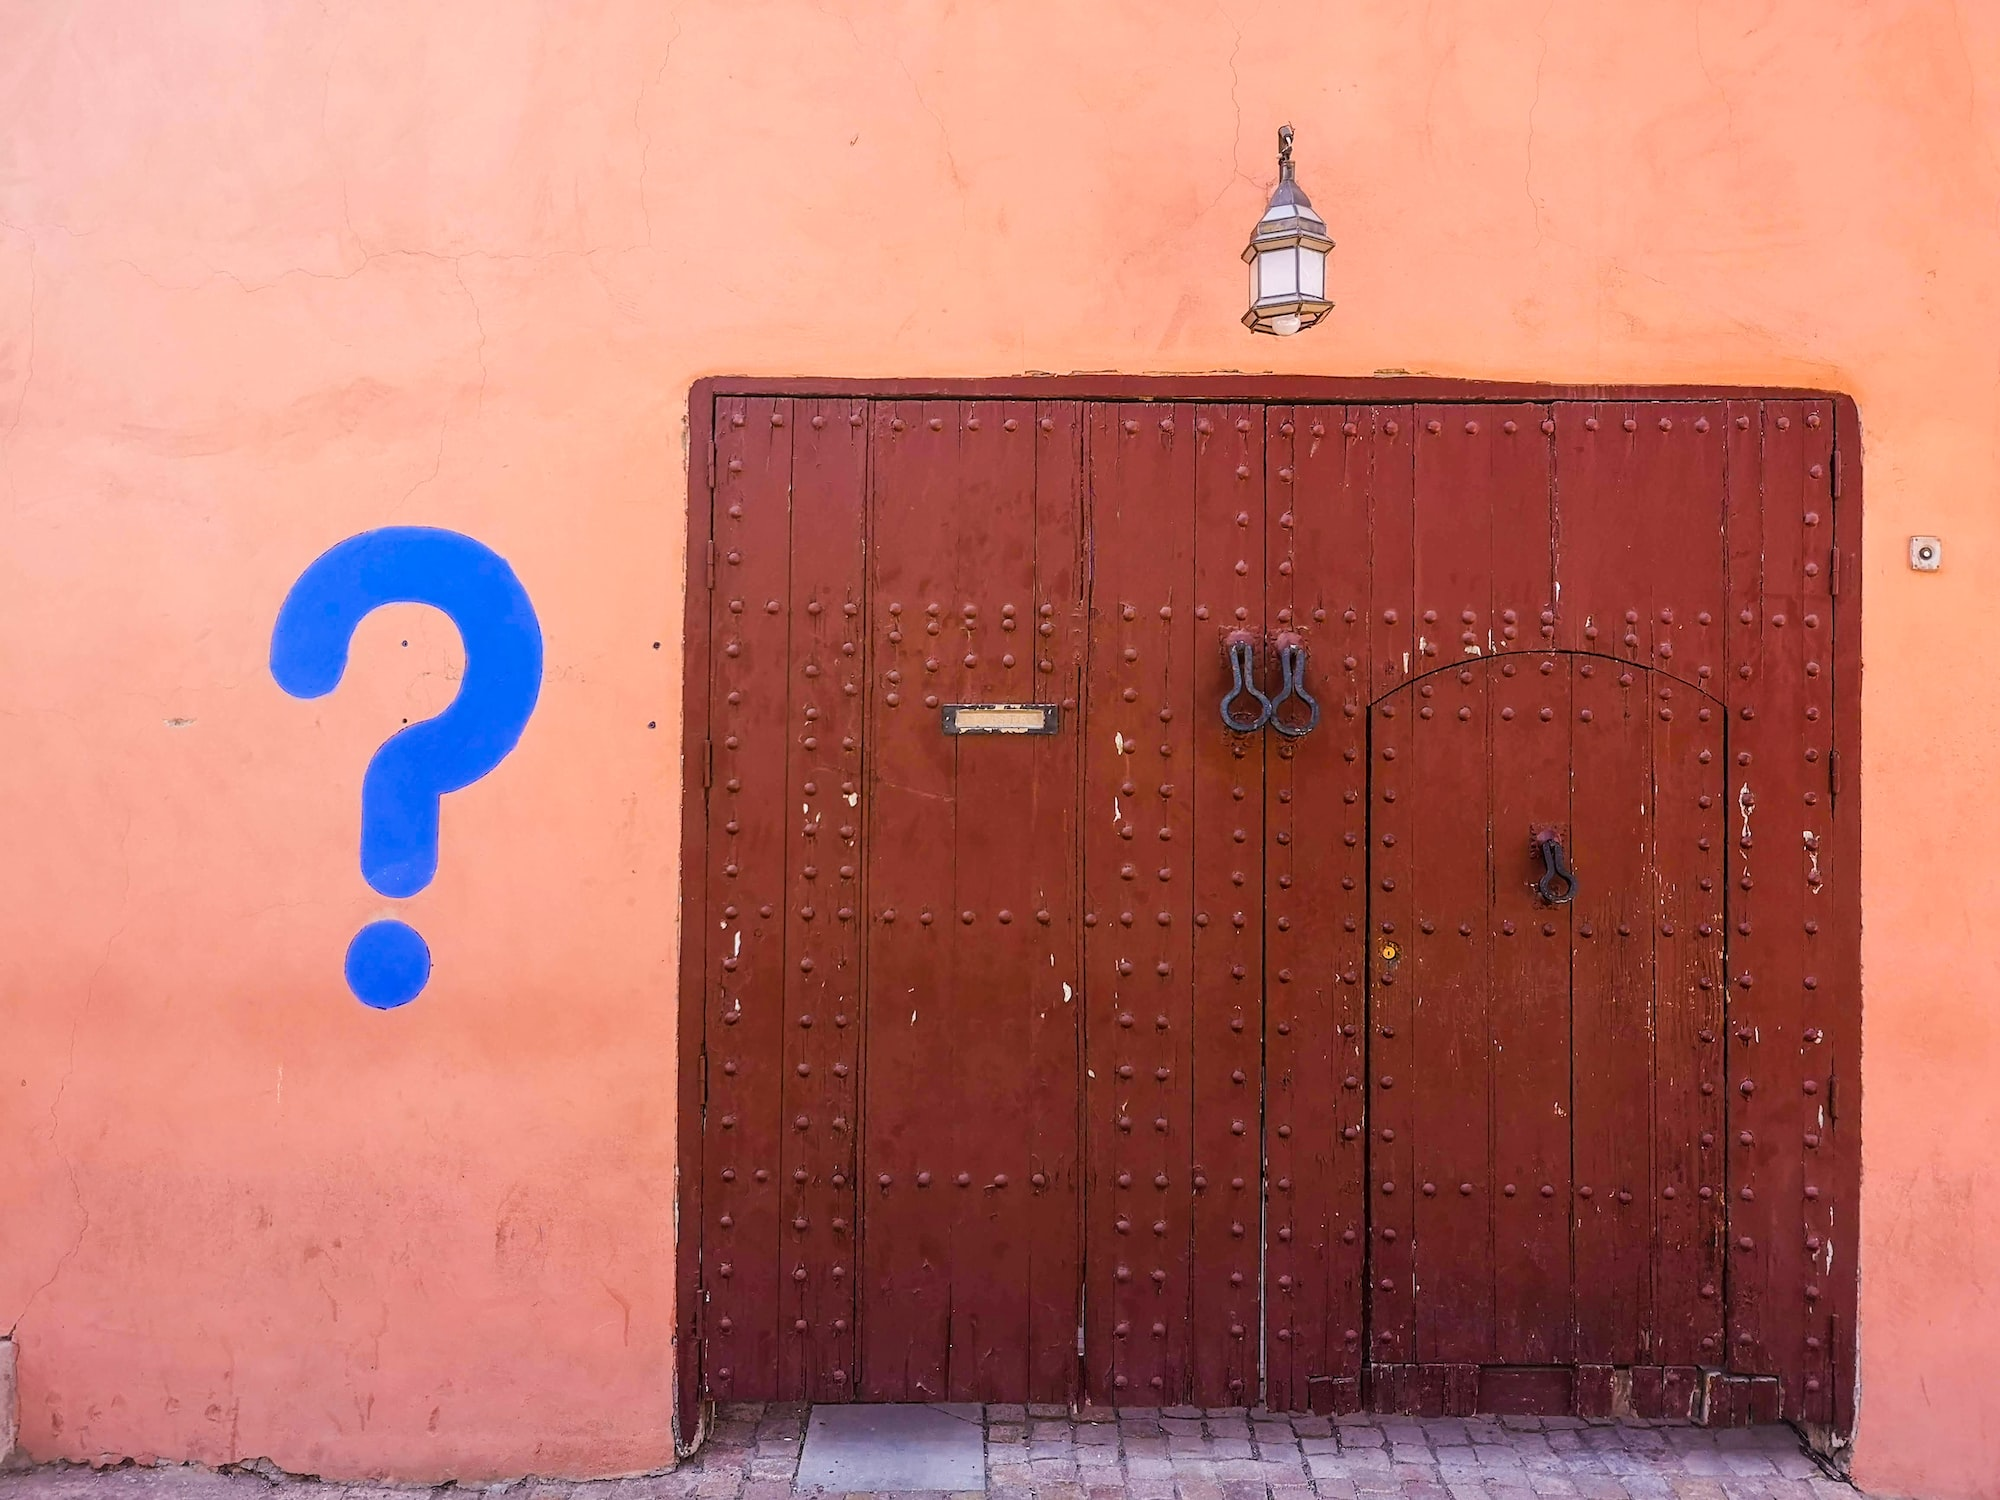 Seven Questions We Did Not Hear From Pastors Five Years Ago